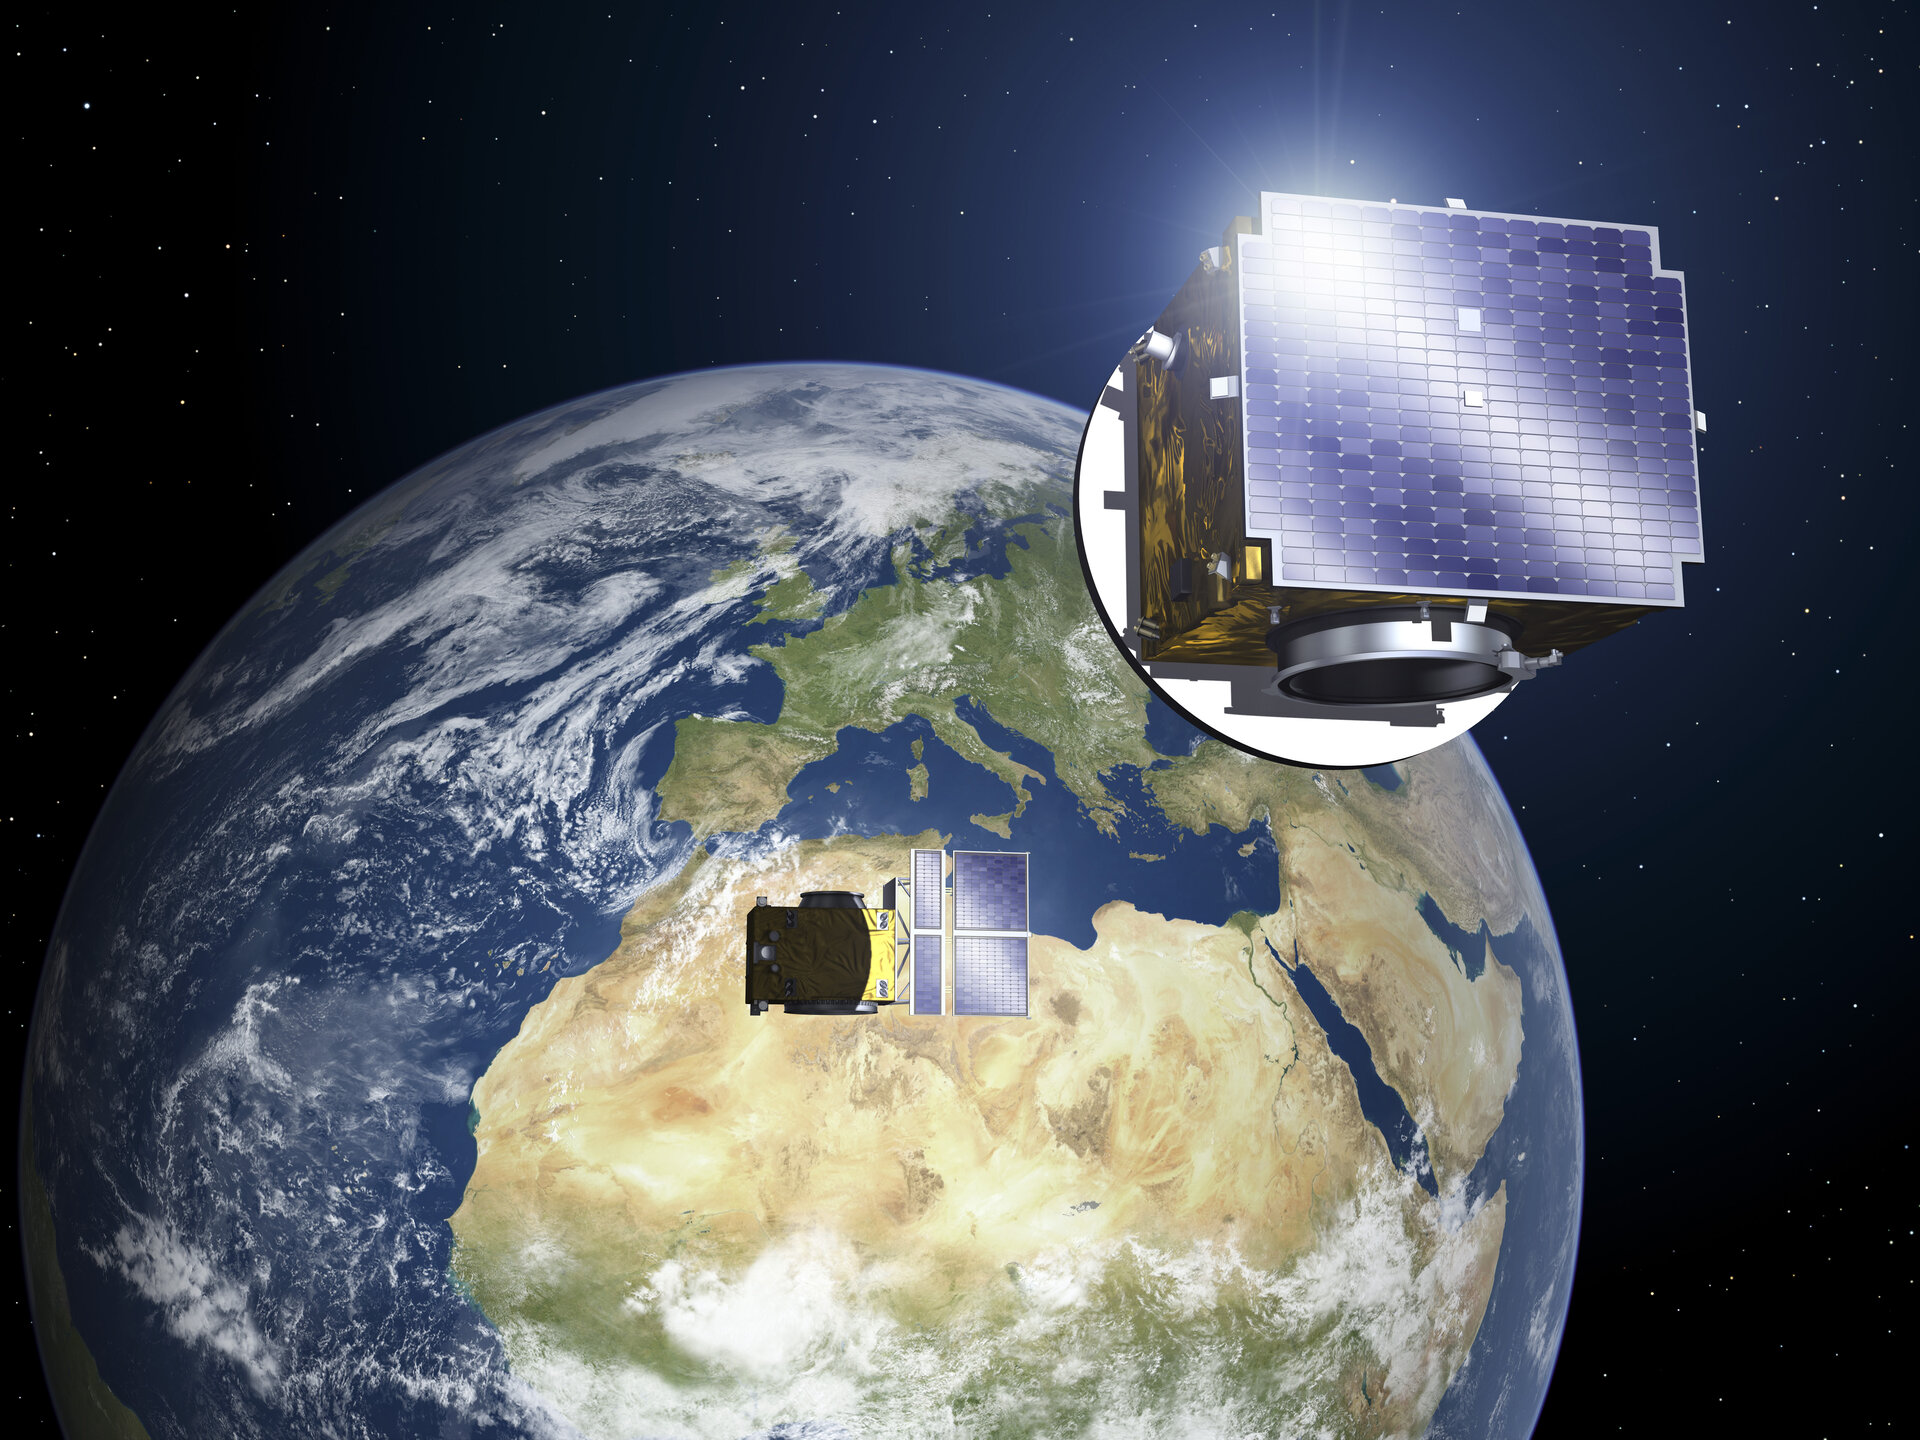 Proba-3's pair of satellites